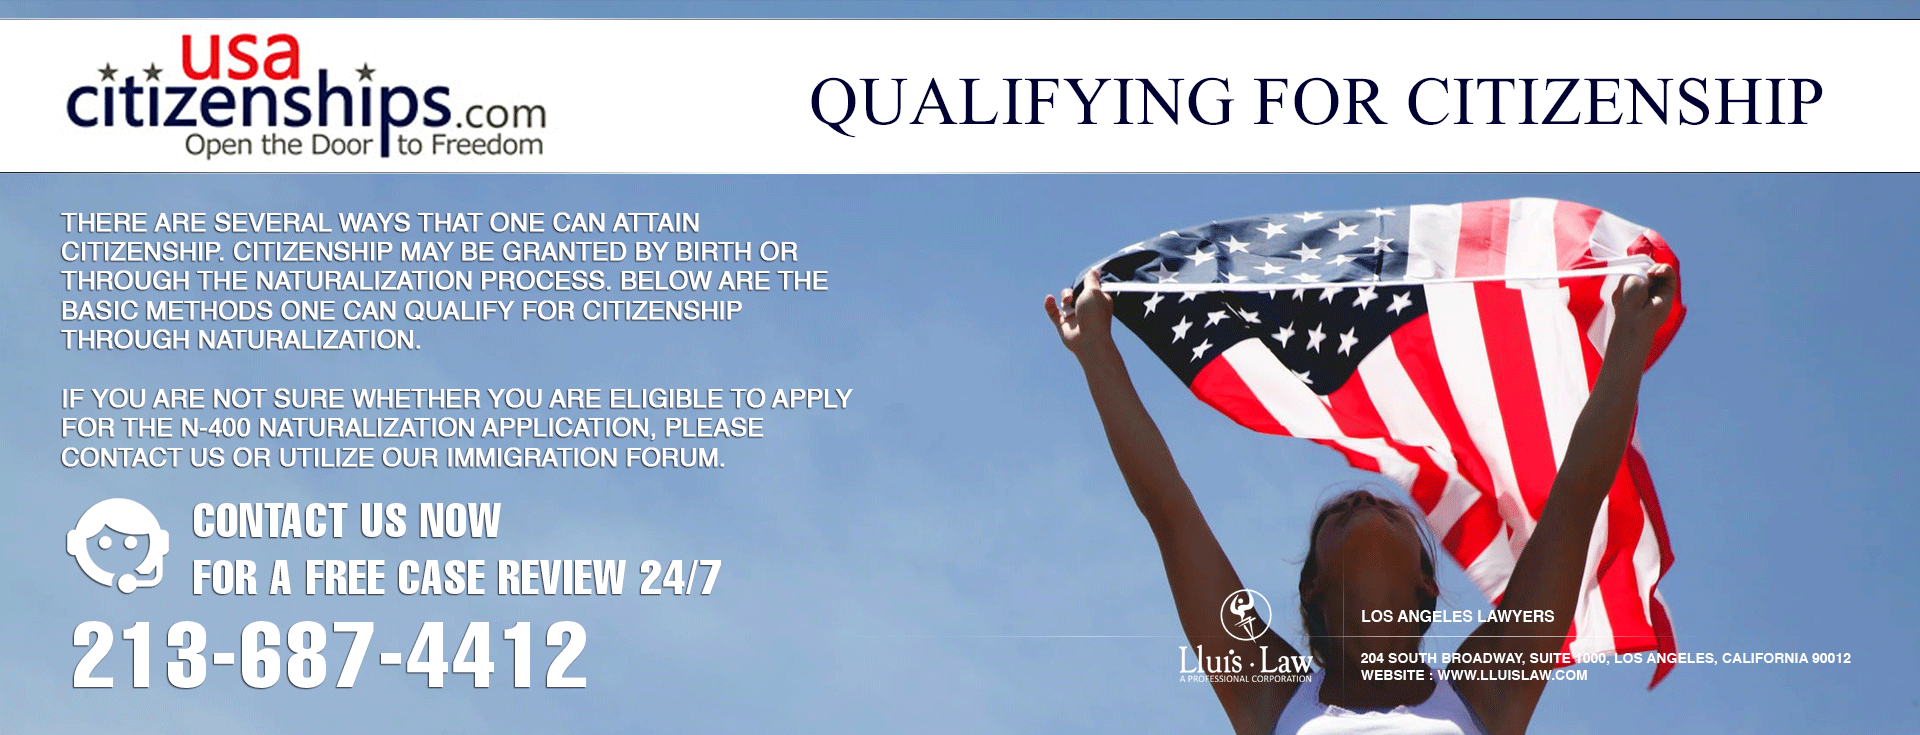 Qualifying for Citizenships